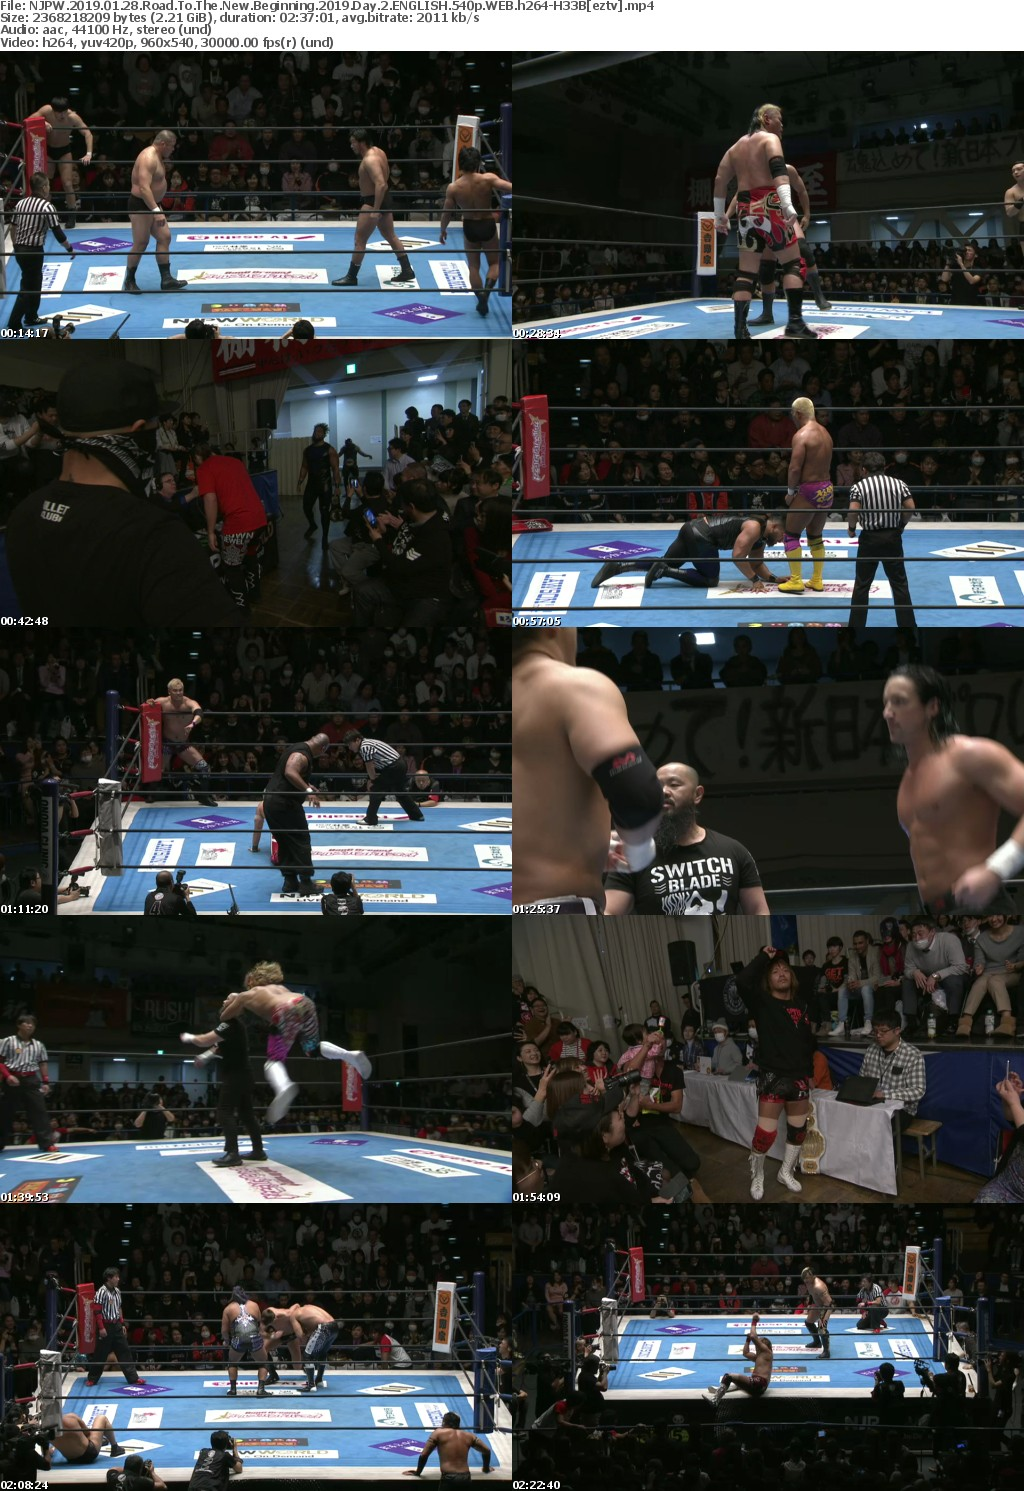 NJPW (2019) 01 28 Road To The New Beginning (2019) Day 2 ENGLISH 540p WEB h264-H33B